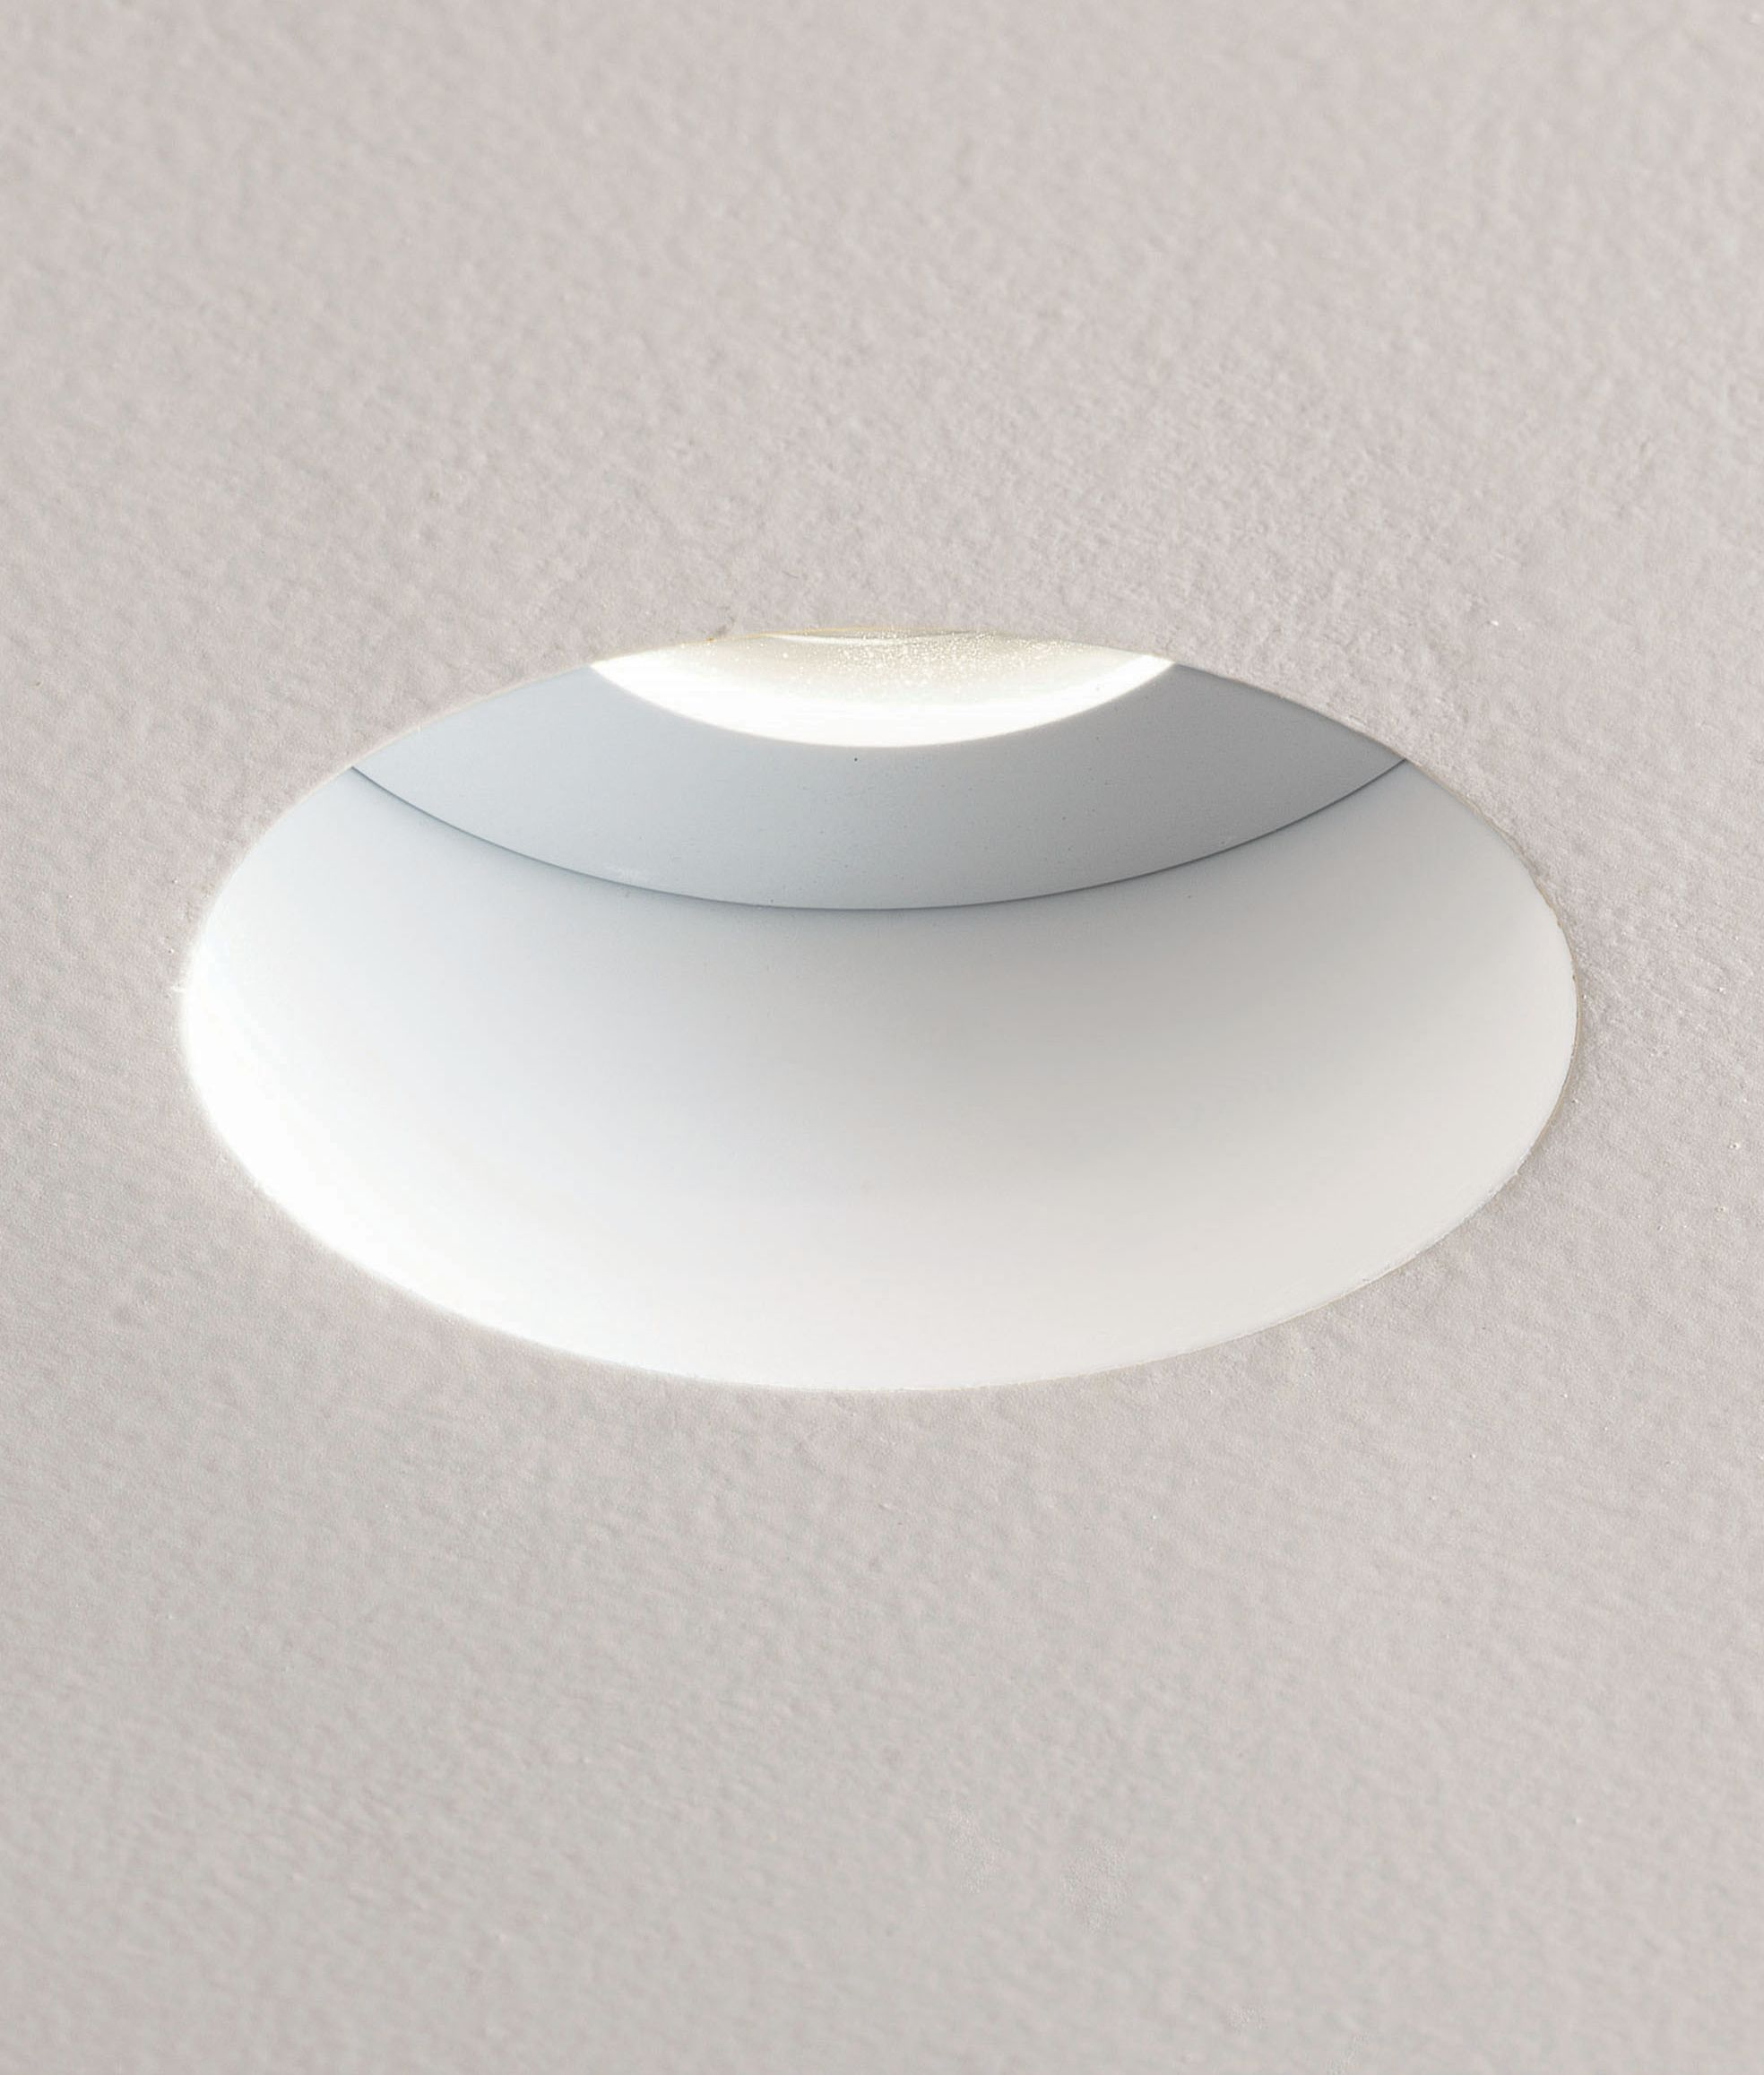 Fire Rated Hidden Recessed Downlight For Gu10 Mains Lamps Recessed Ceiling Lights Ceiling Lights Bathroom Ceiling Light